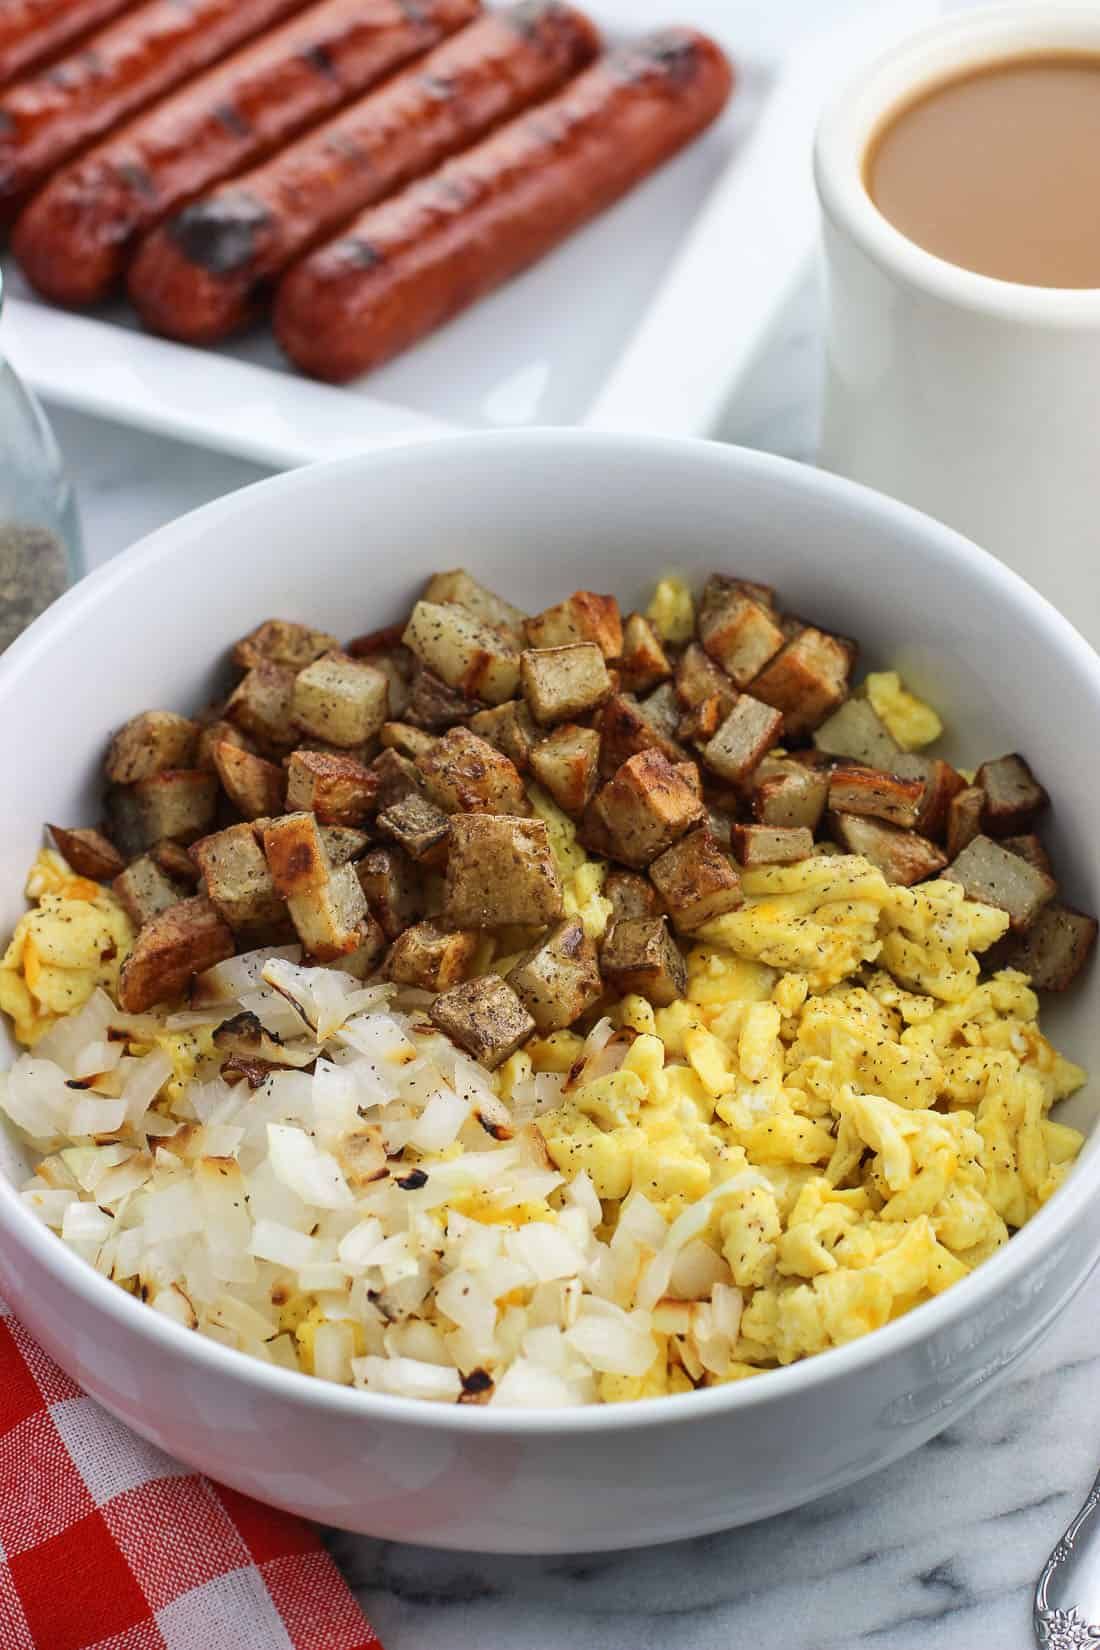 A big bowl featuring sections of grilled onion, scrambled eggs, and roasted potatoes.